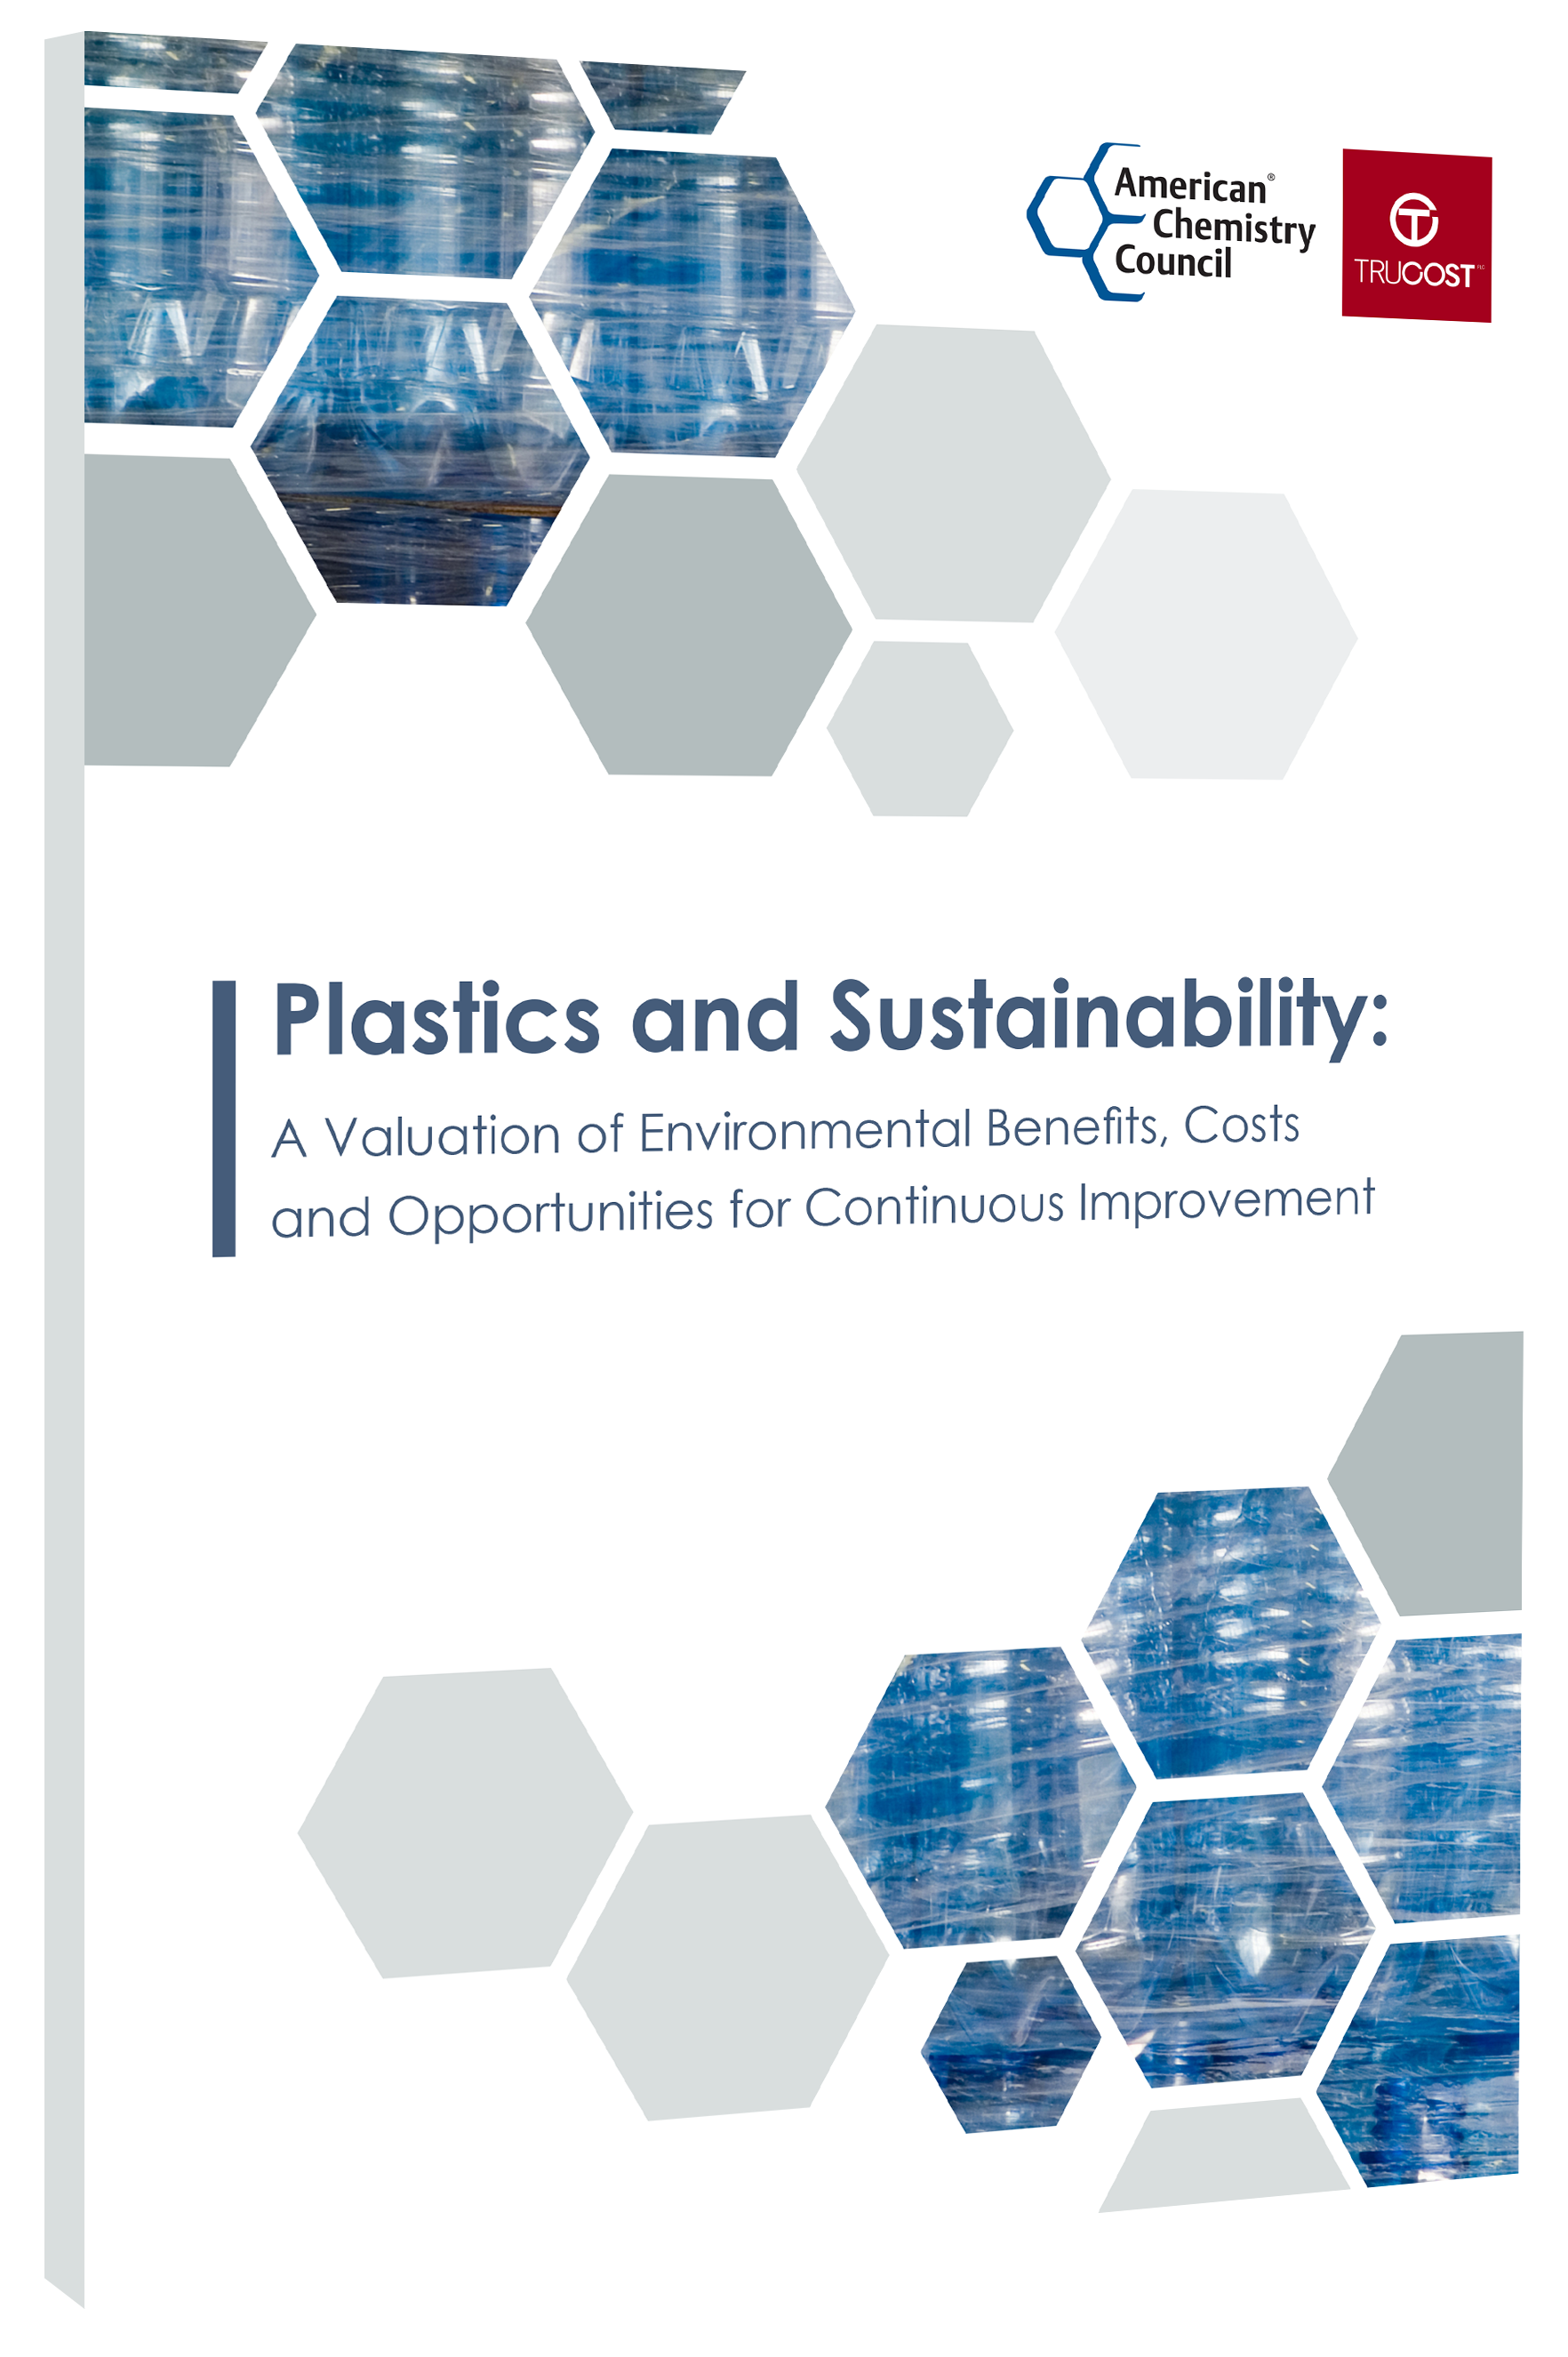 Plastics and Sustainability: A Trucost Study - Marine Litter